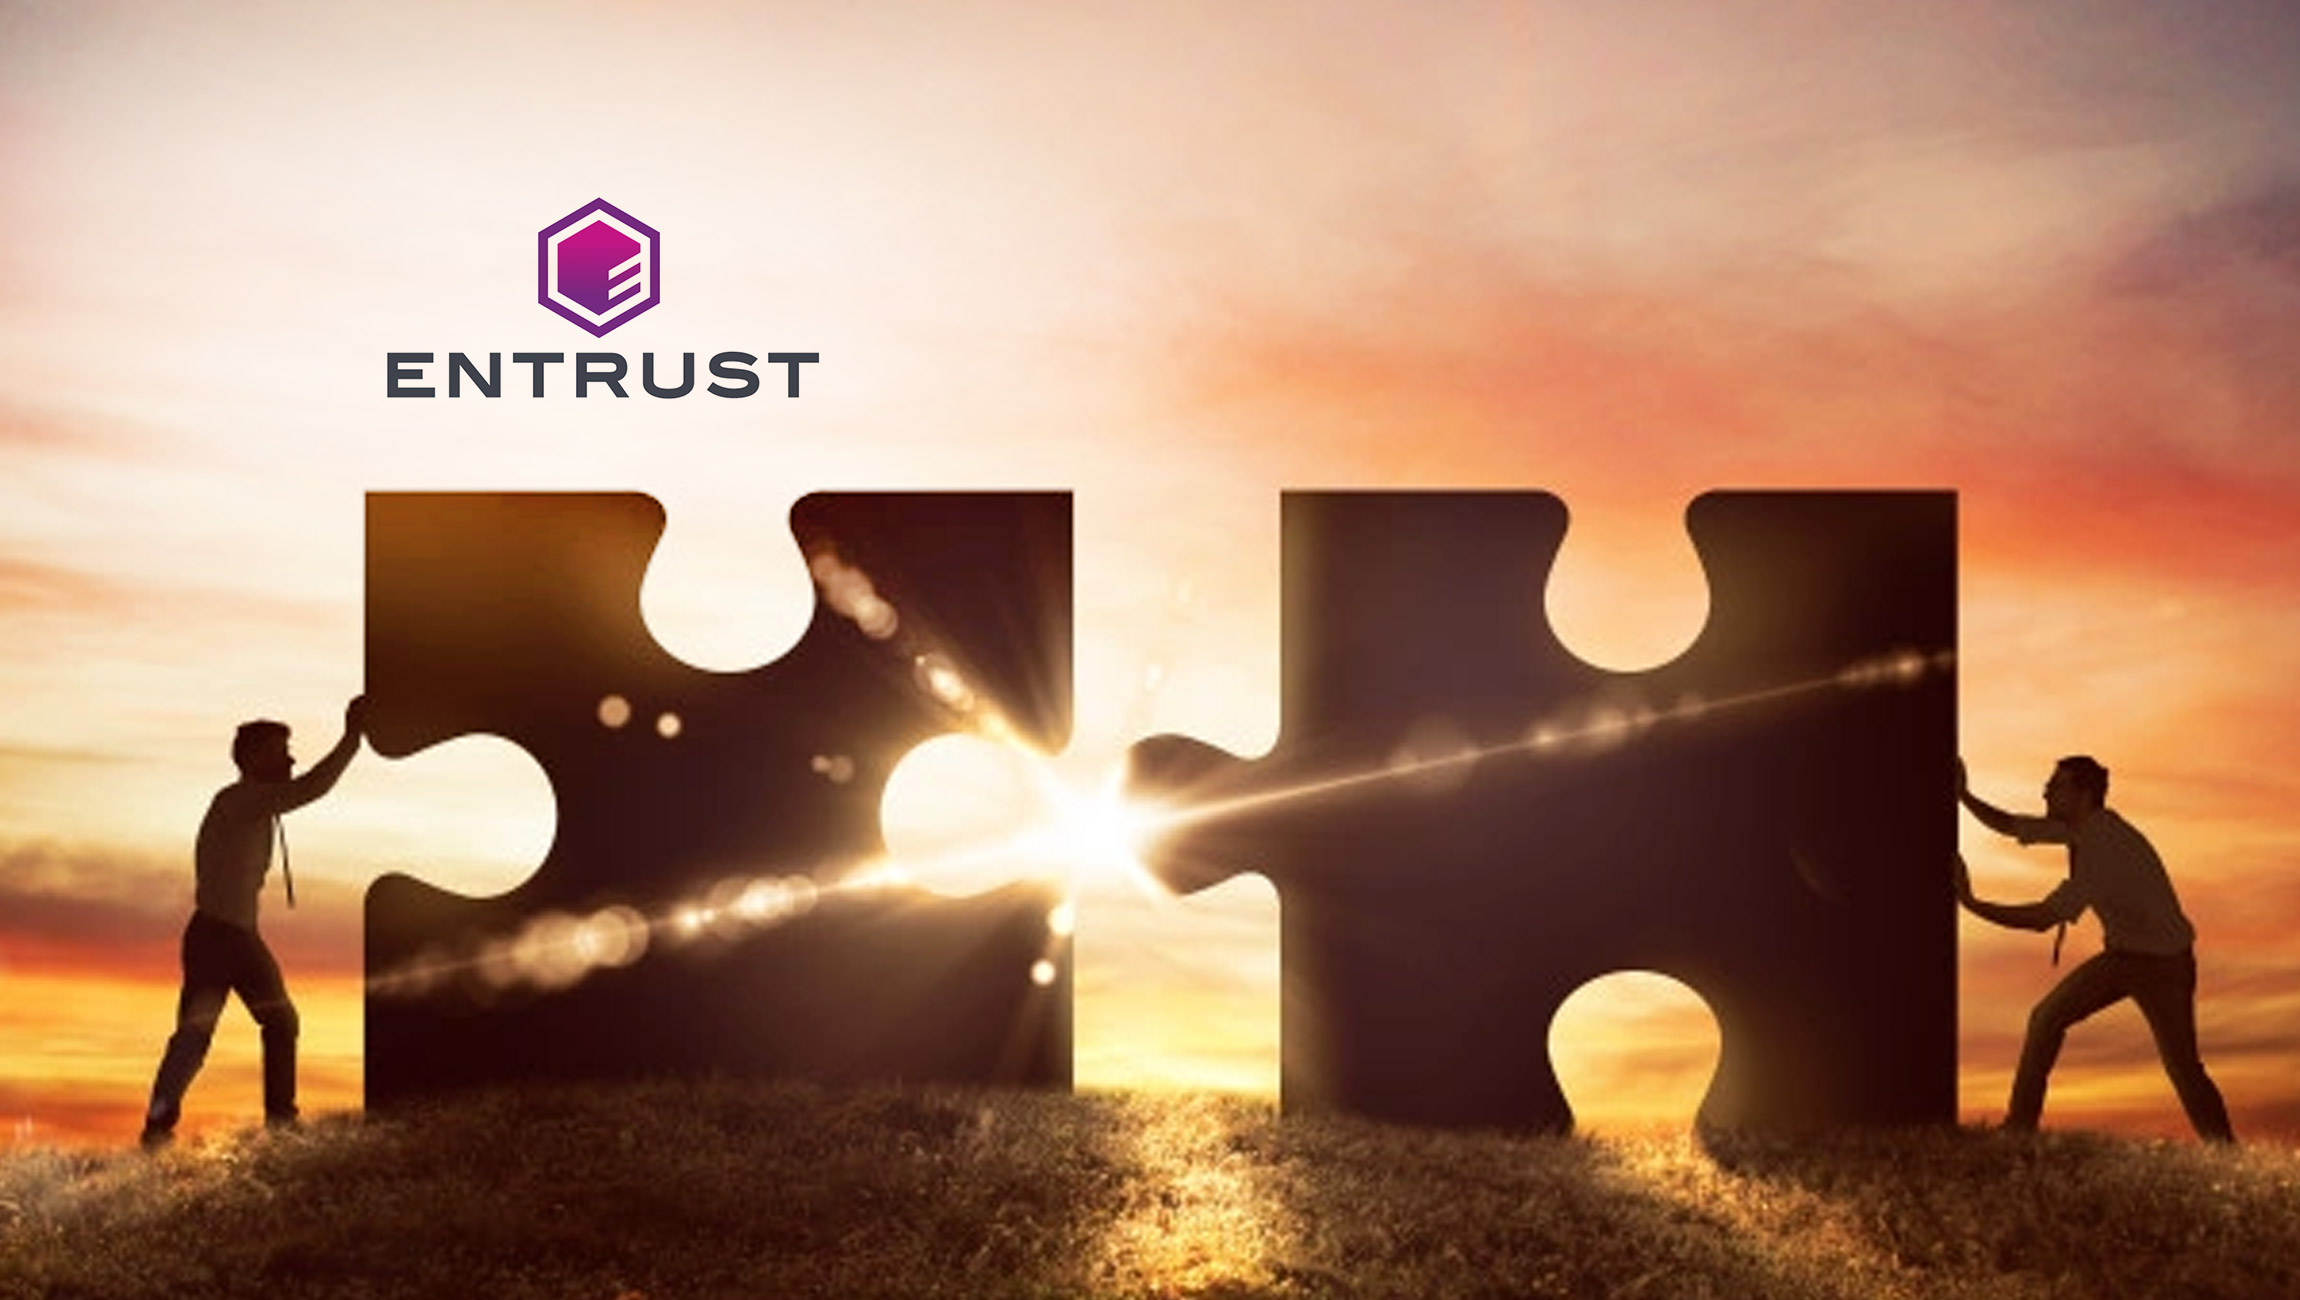 Entrust Acquires WorldReach, Adding Leading Solutions For Digital Traveler And Citizen Identity Experiences